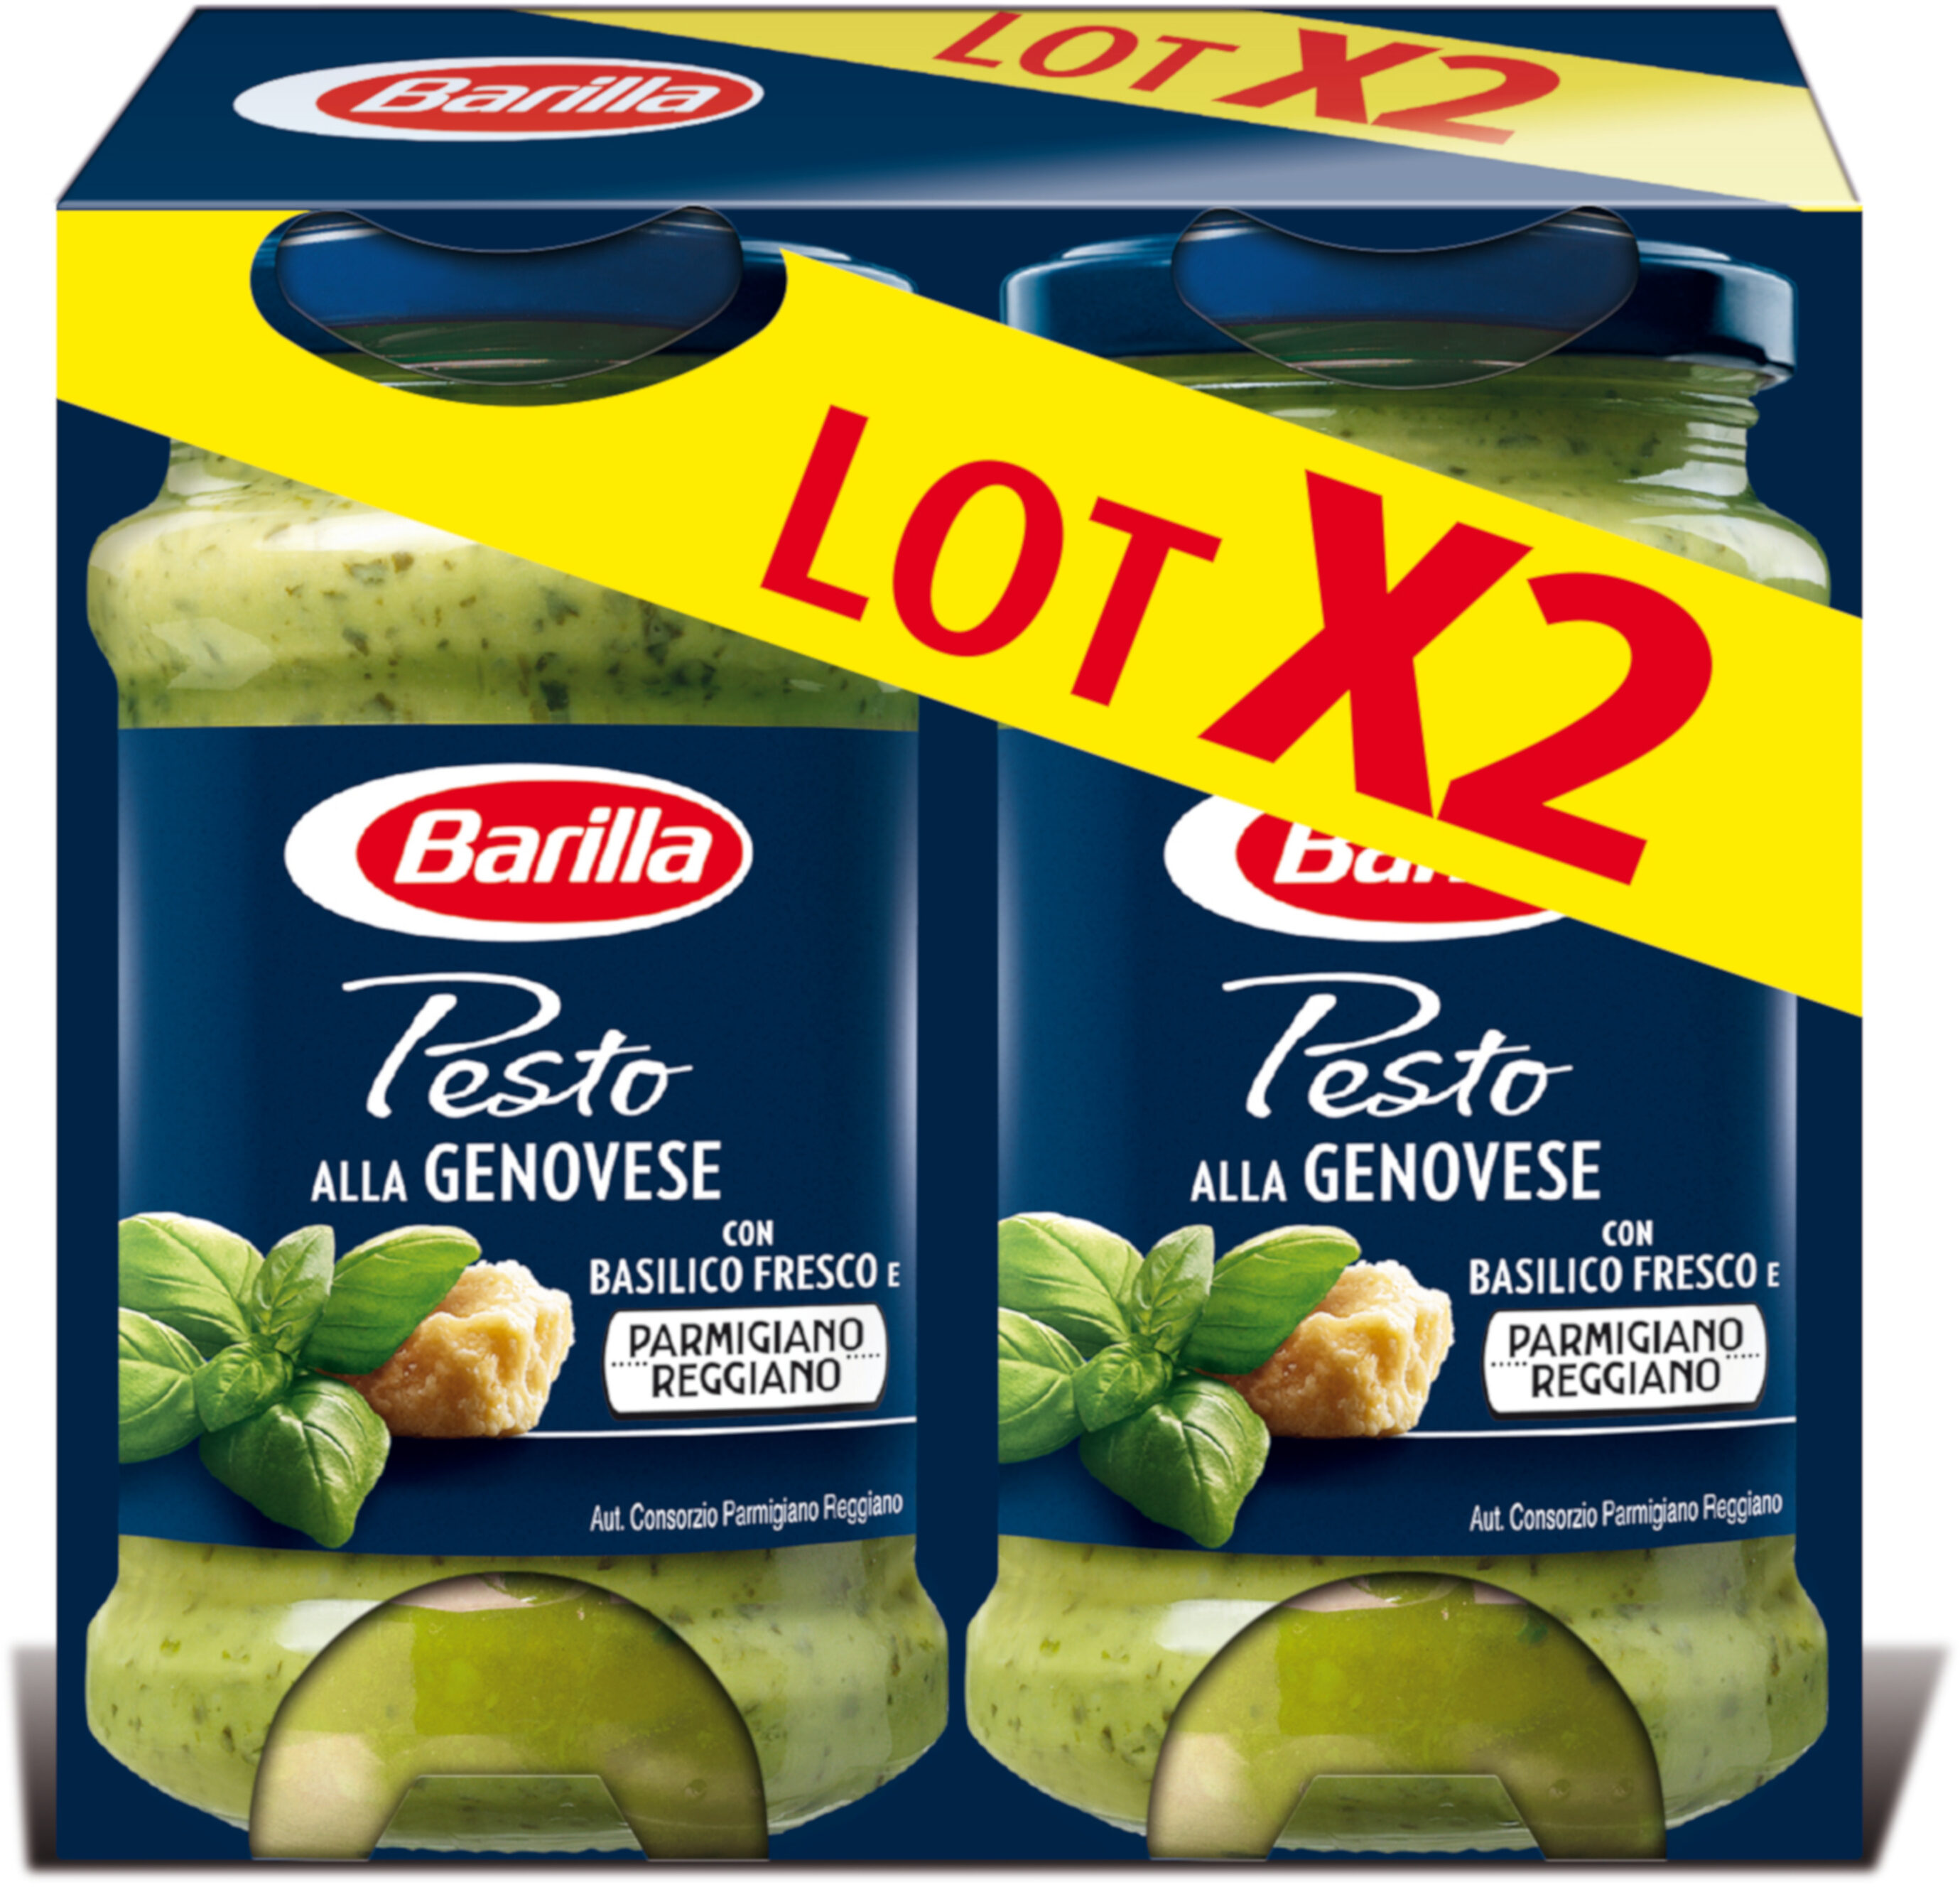 Banded pack genovese 190gx2 - Prodotto - fr